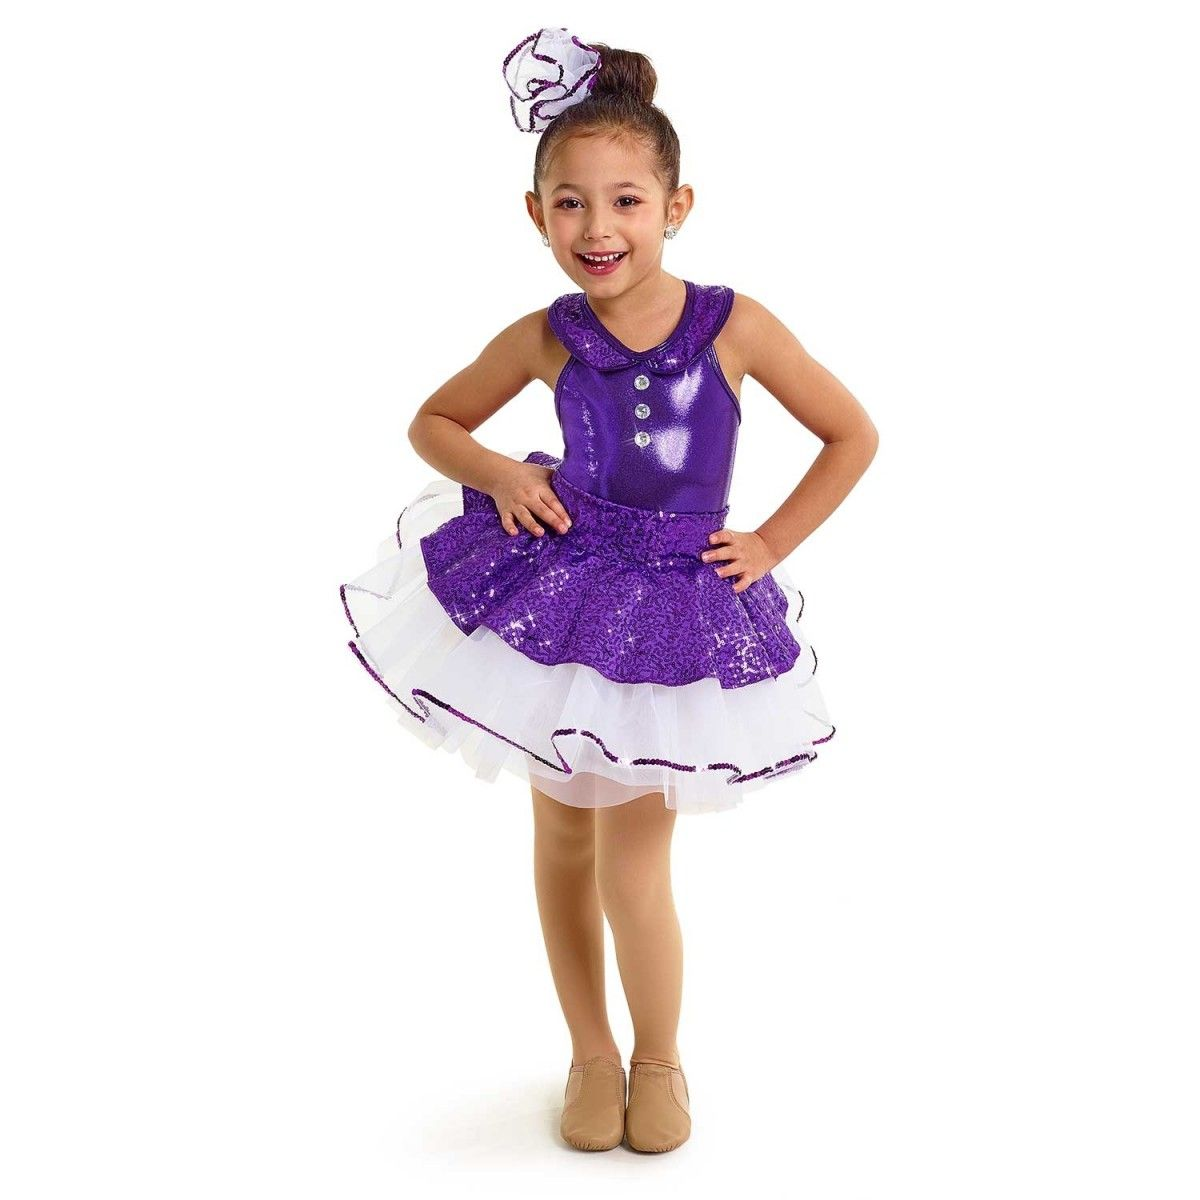 Instant Classic Curtain Call Costumes Catalogs Dance